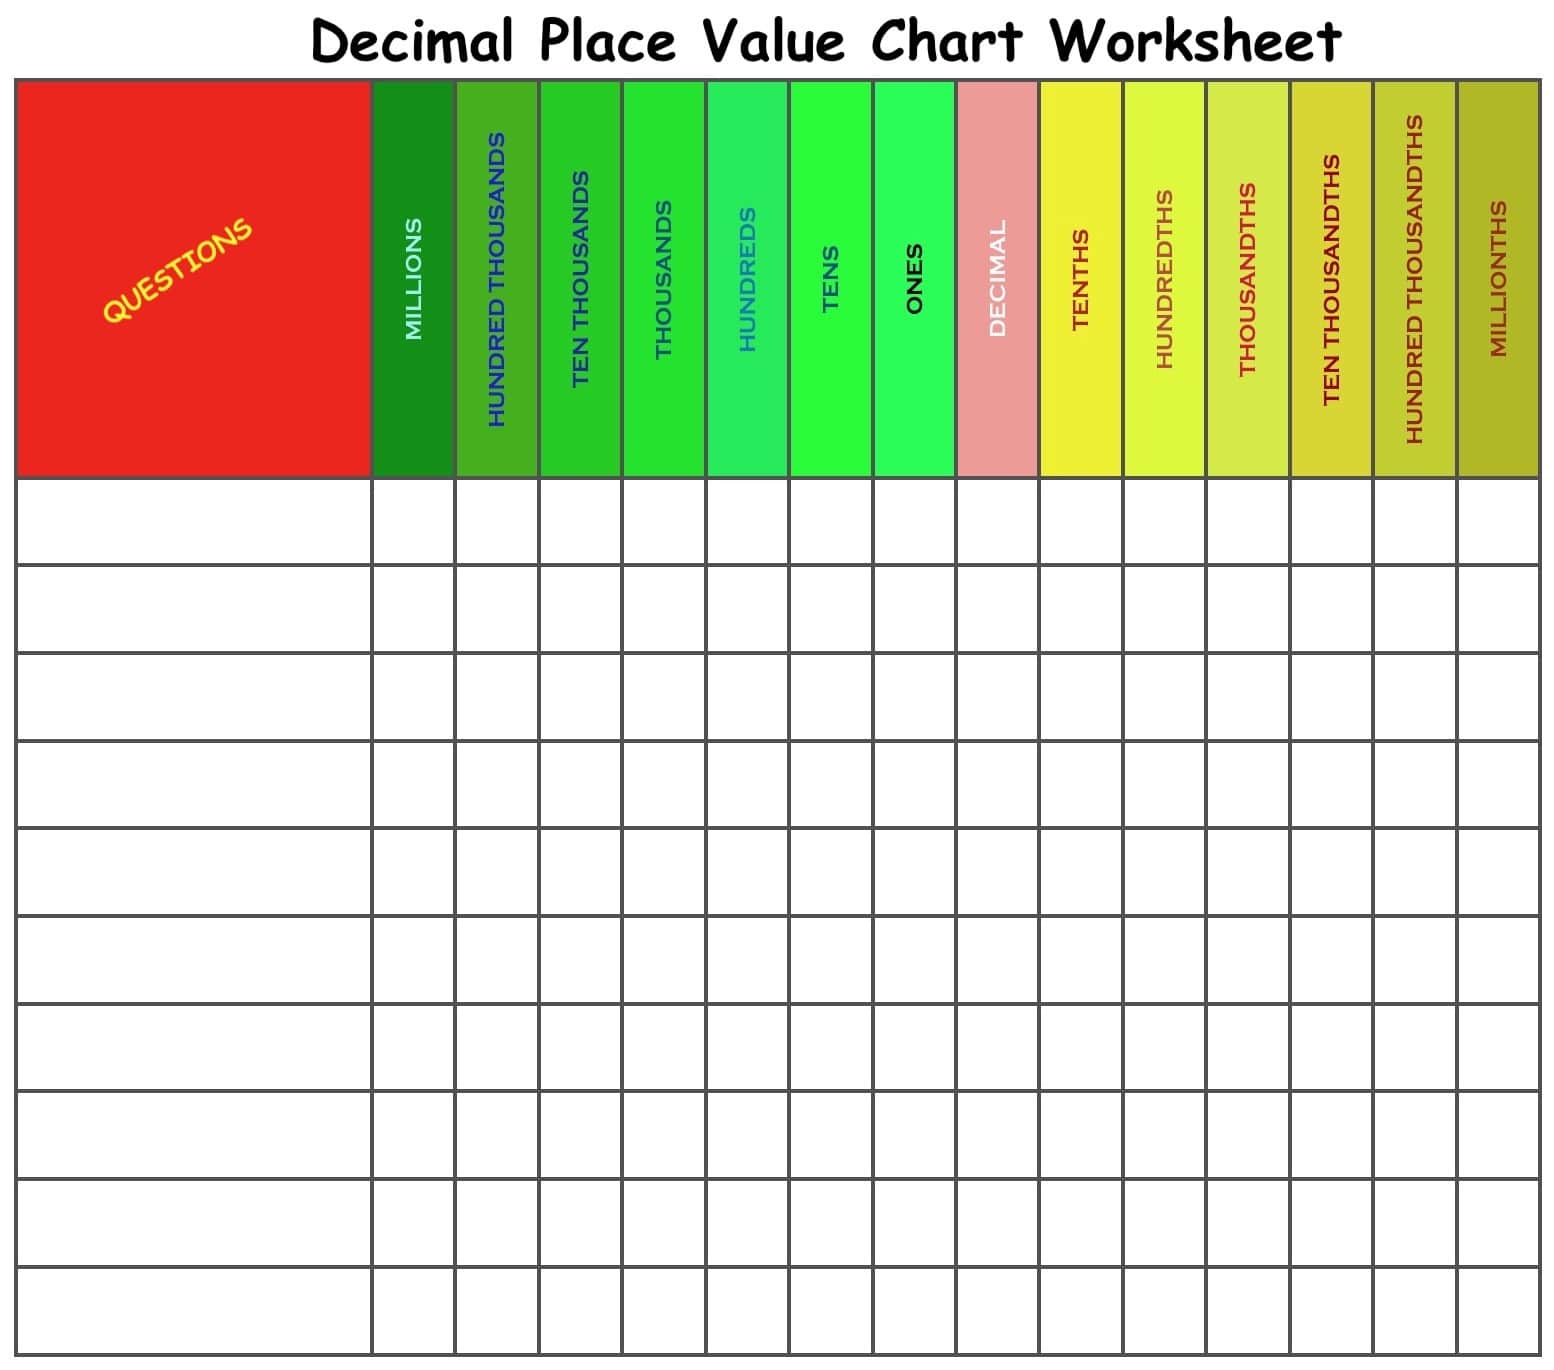 Decimal Place Value, Charts, And Downloadable Exercises